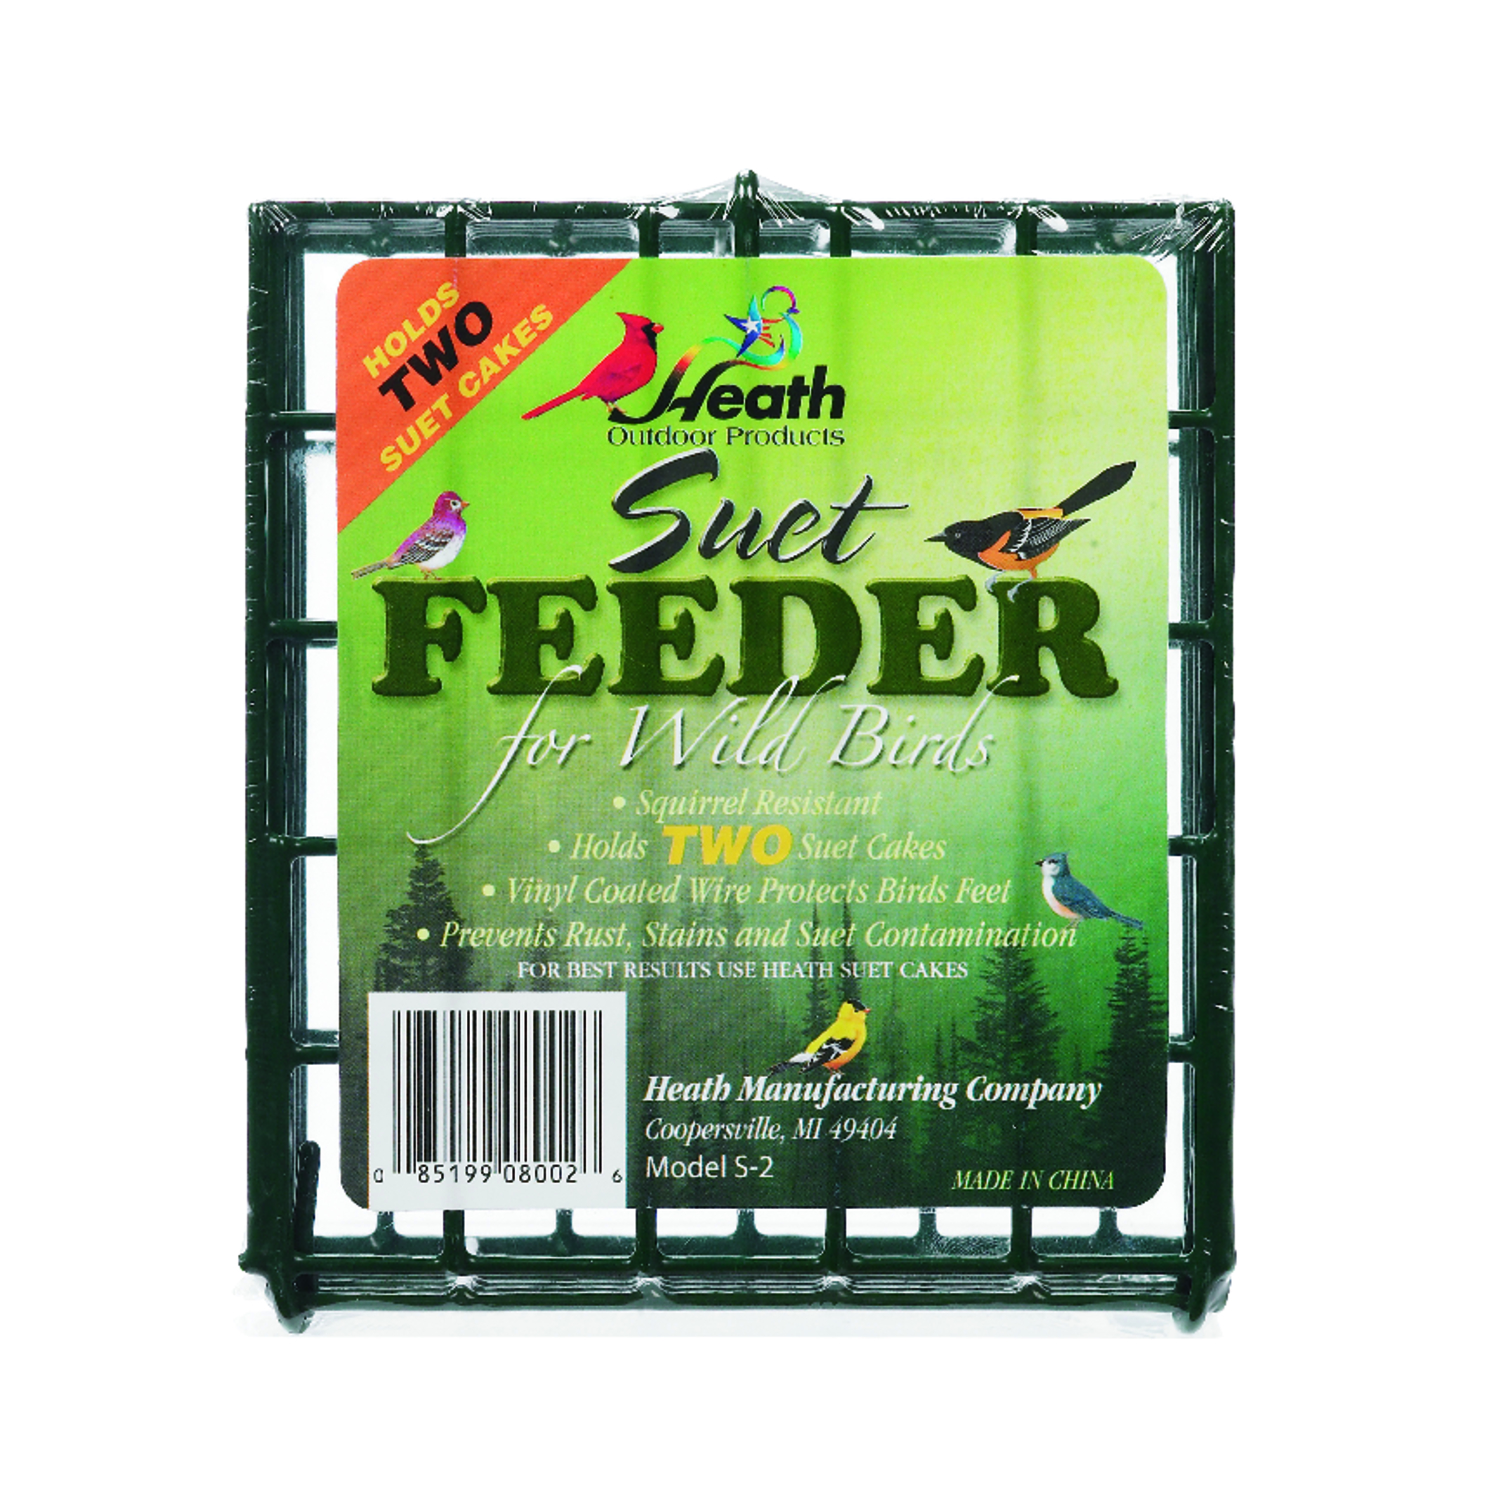 Heath  Wild Bird  1  Metal  Suet  Bird Feeder